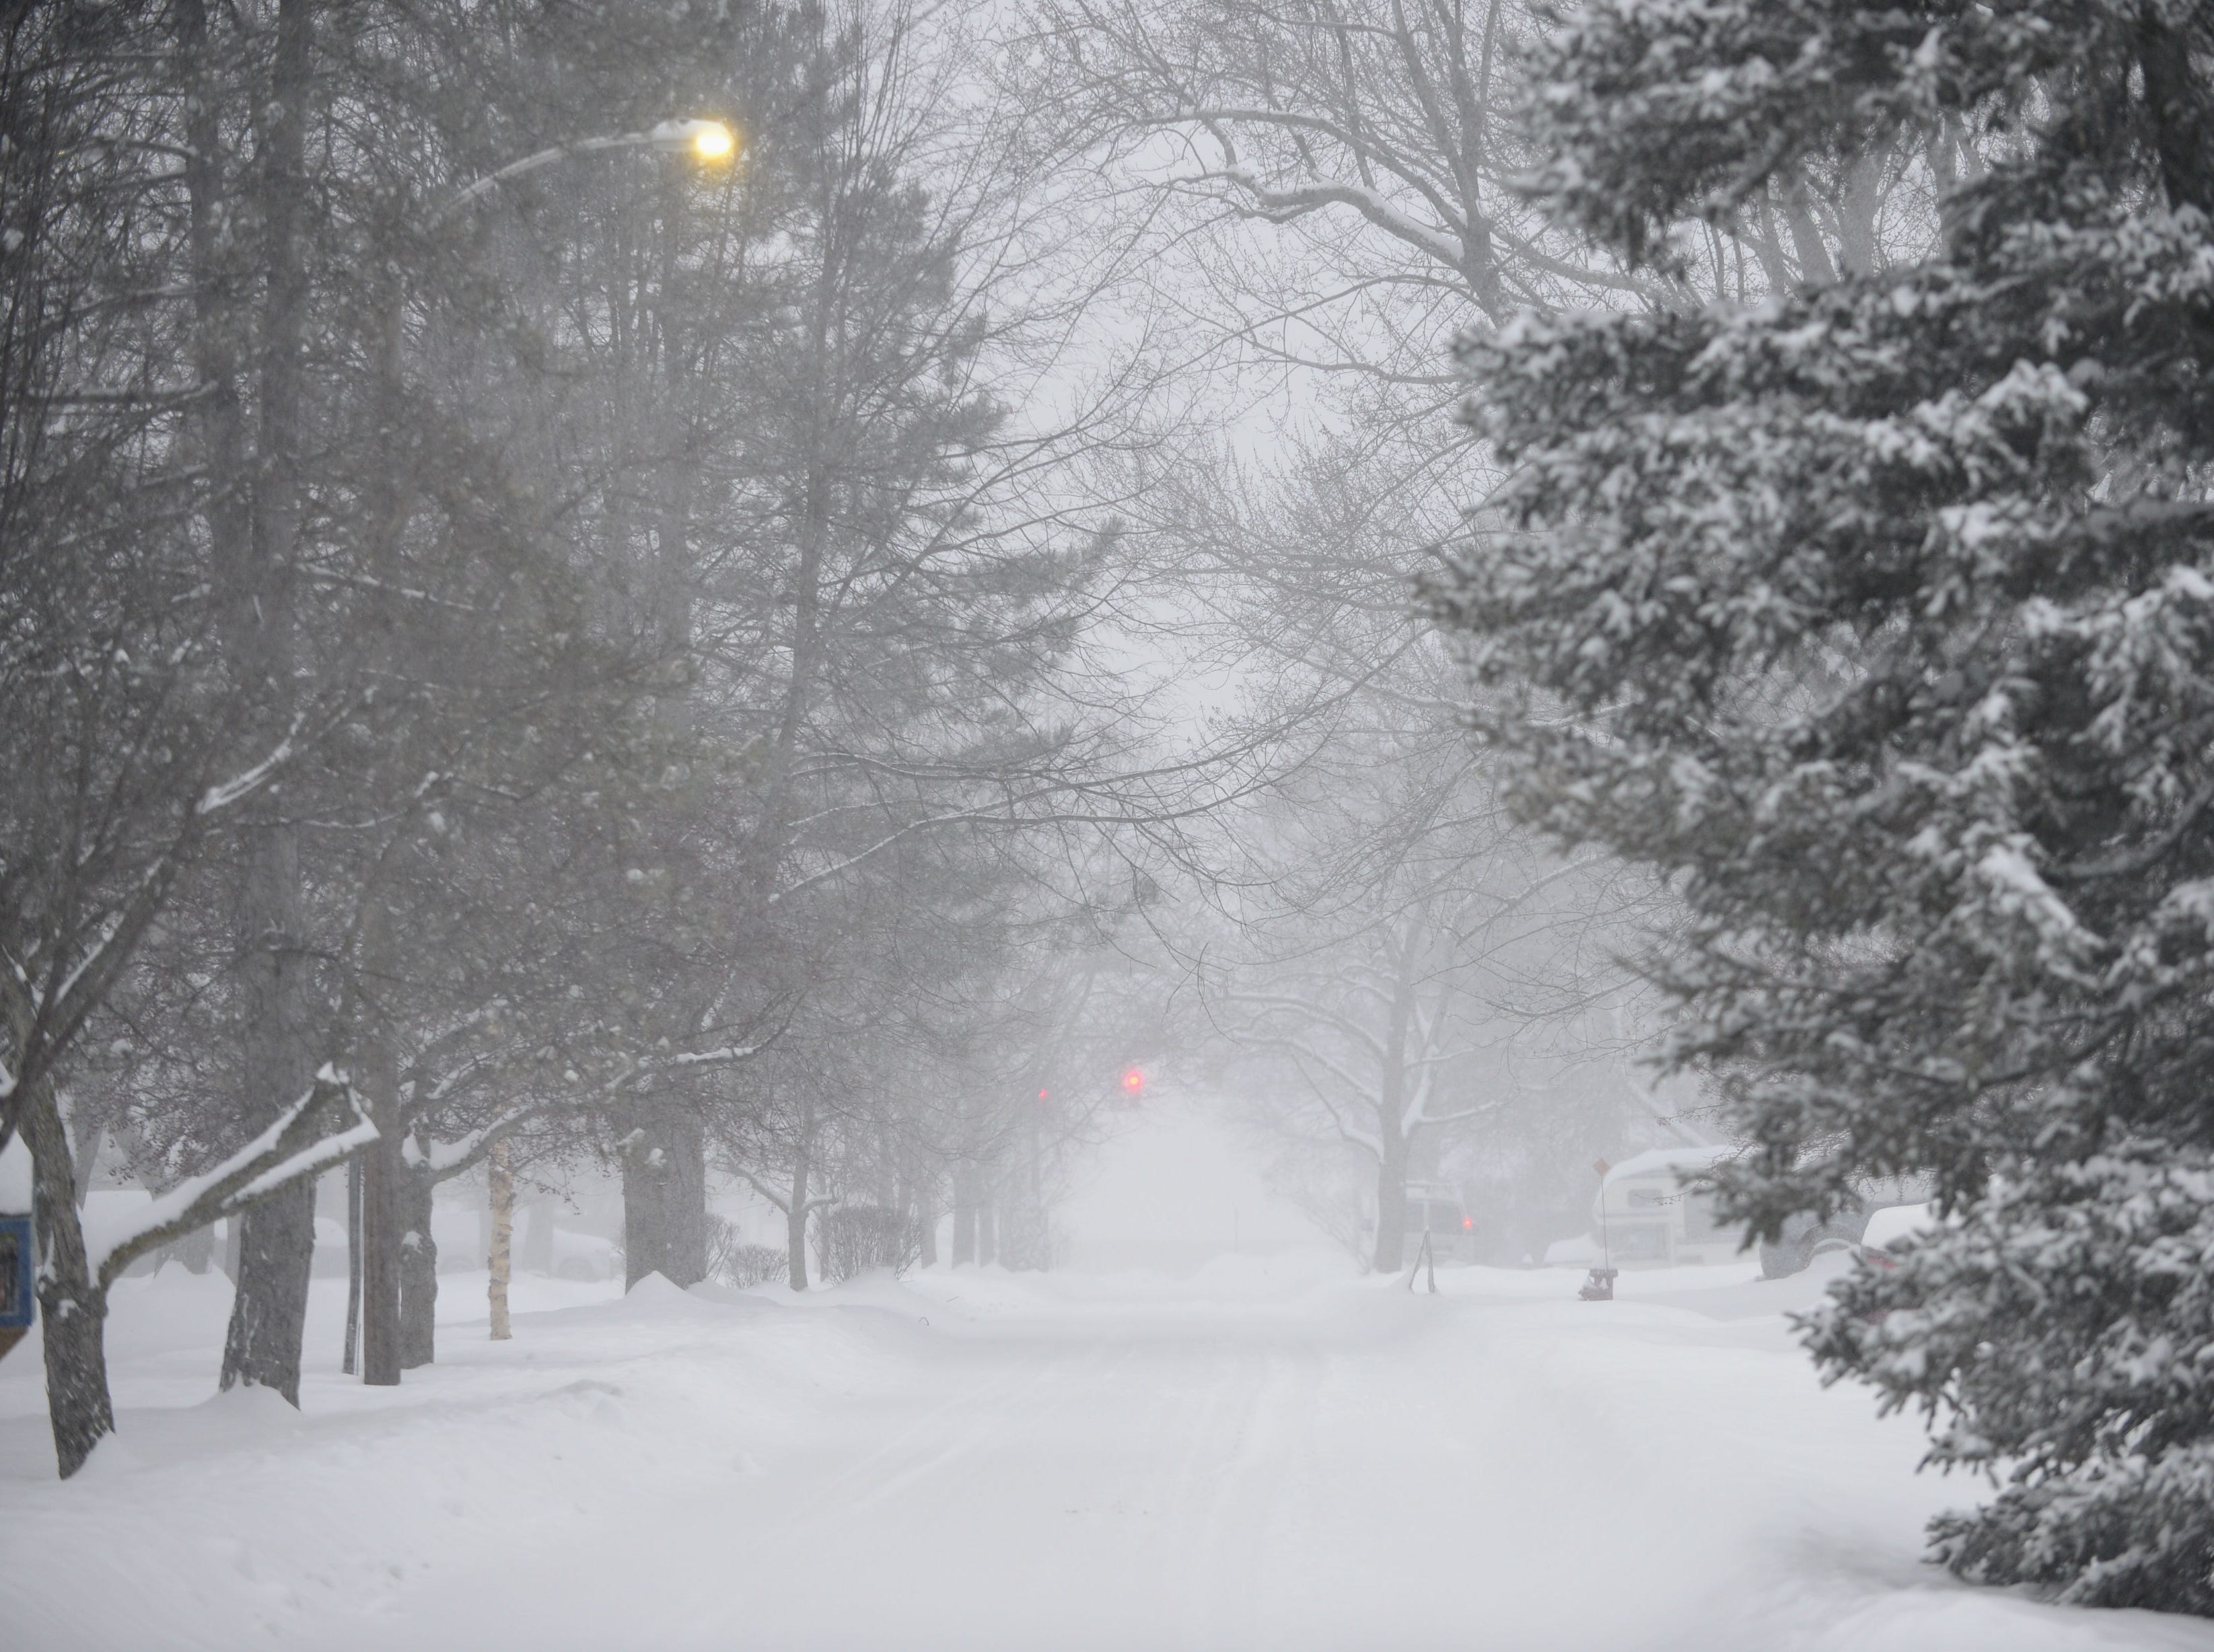 Blowing and falling snow dims the view down Brewer Parkway toward Shelburne Road in South Burlington Sunday morning, Jan. 20, 2019. The winter storm, dubbed Harper by the Weather Channel, swept into Vermont Saturday night and was expected drop as much as 24 inches of snow by Sunday evening.